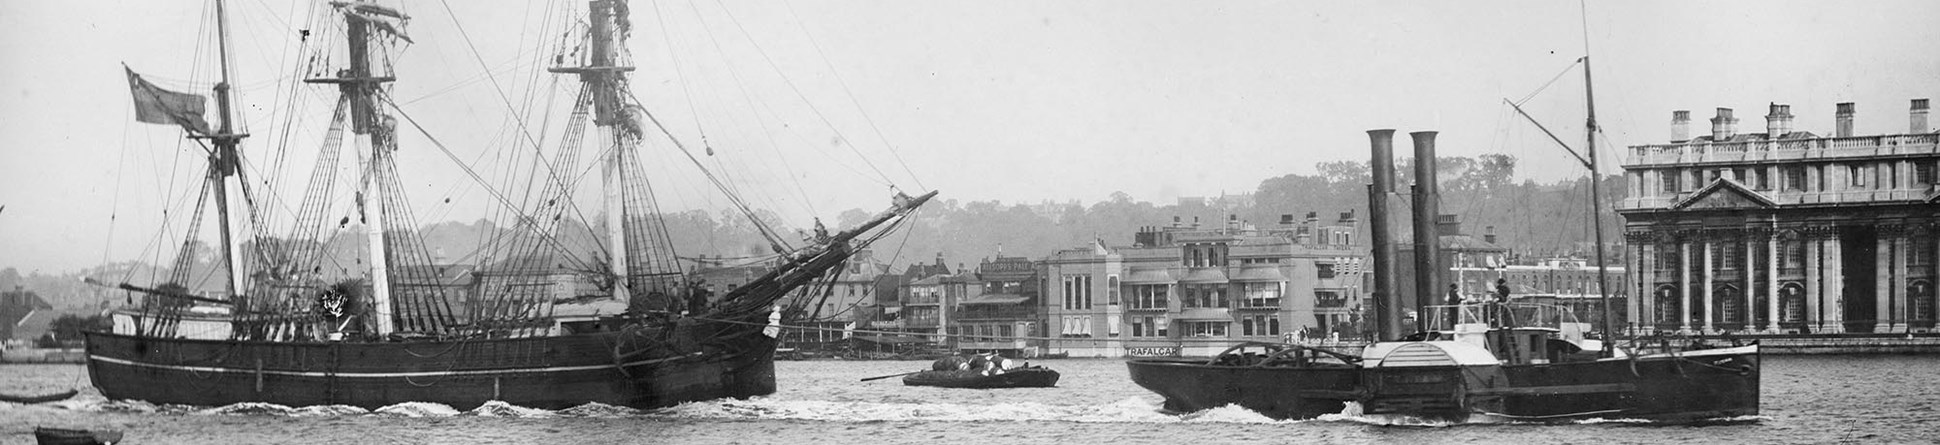 Sailing vessel and paddle steamer on the River Thames at Greenwich